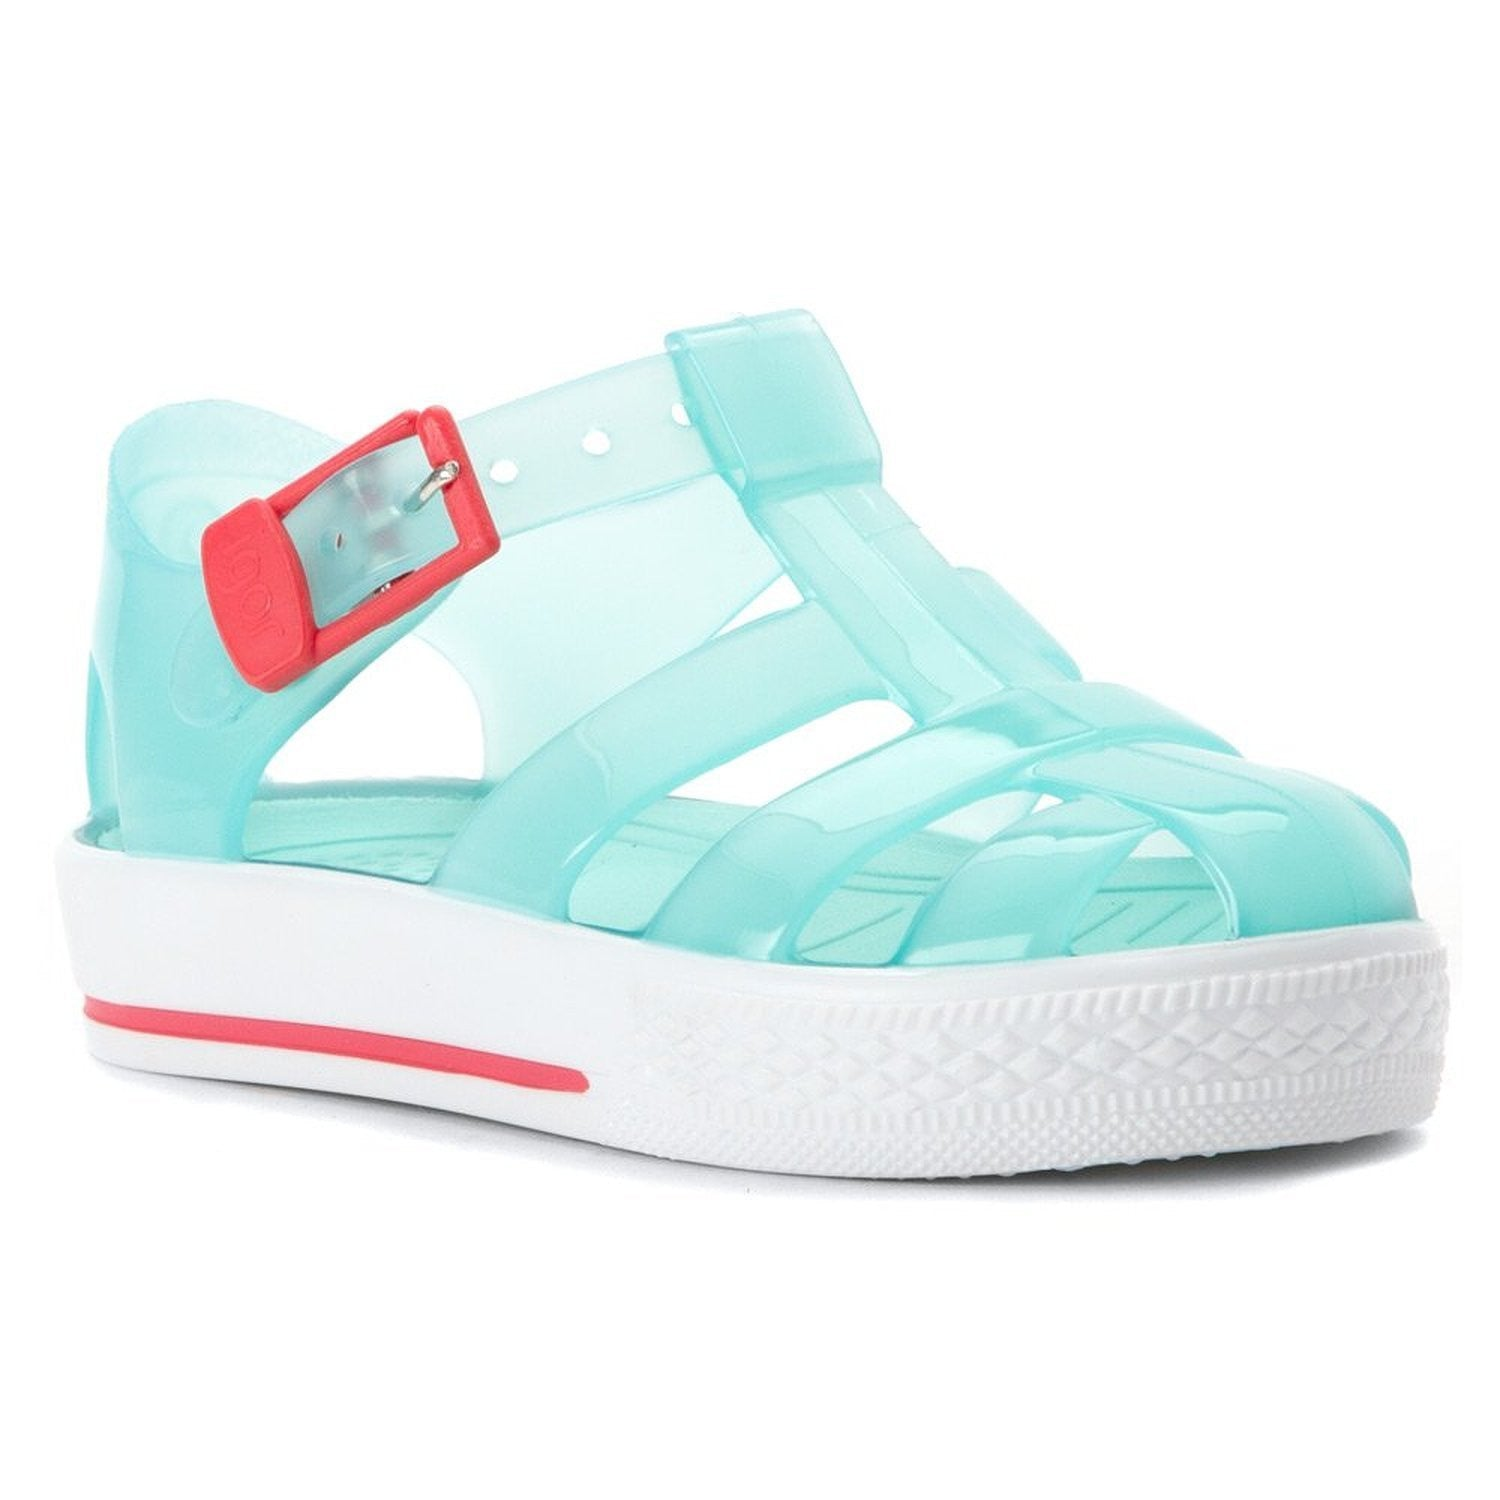 ef65229a780b Turquoise Igor Jelly Sandals Jellies with Pink Buckle- Made in Spain ...